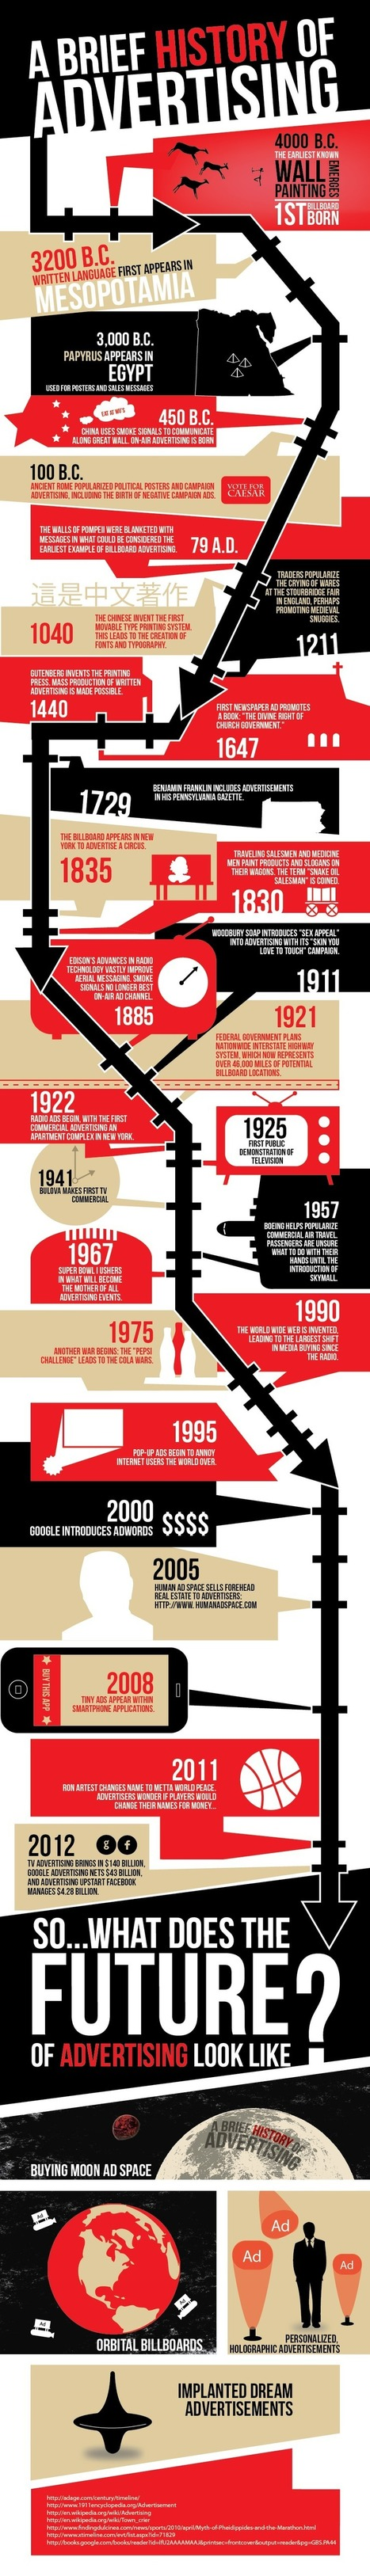 MadMen Is Back, Ocean Media Celebrates with History of Advertising Infographic | Content Creation, Curation, Management | Scoop.it